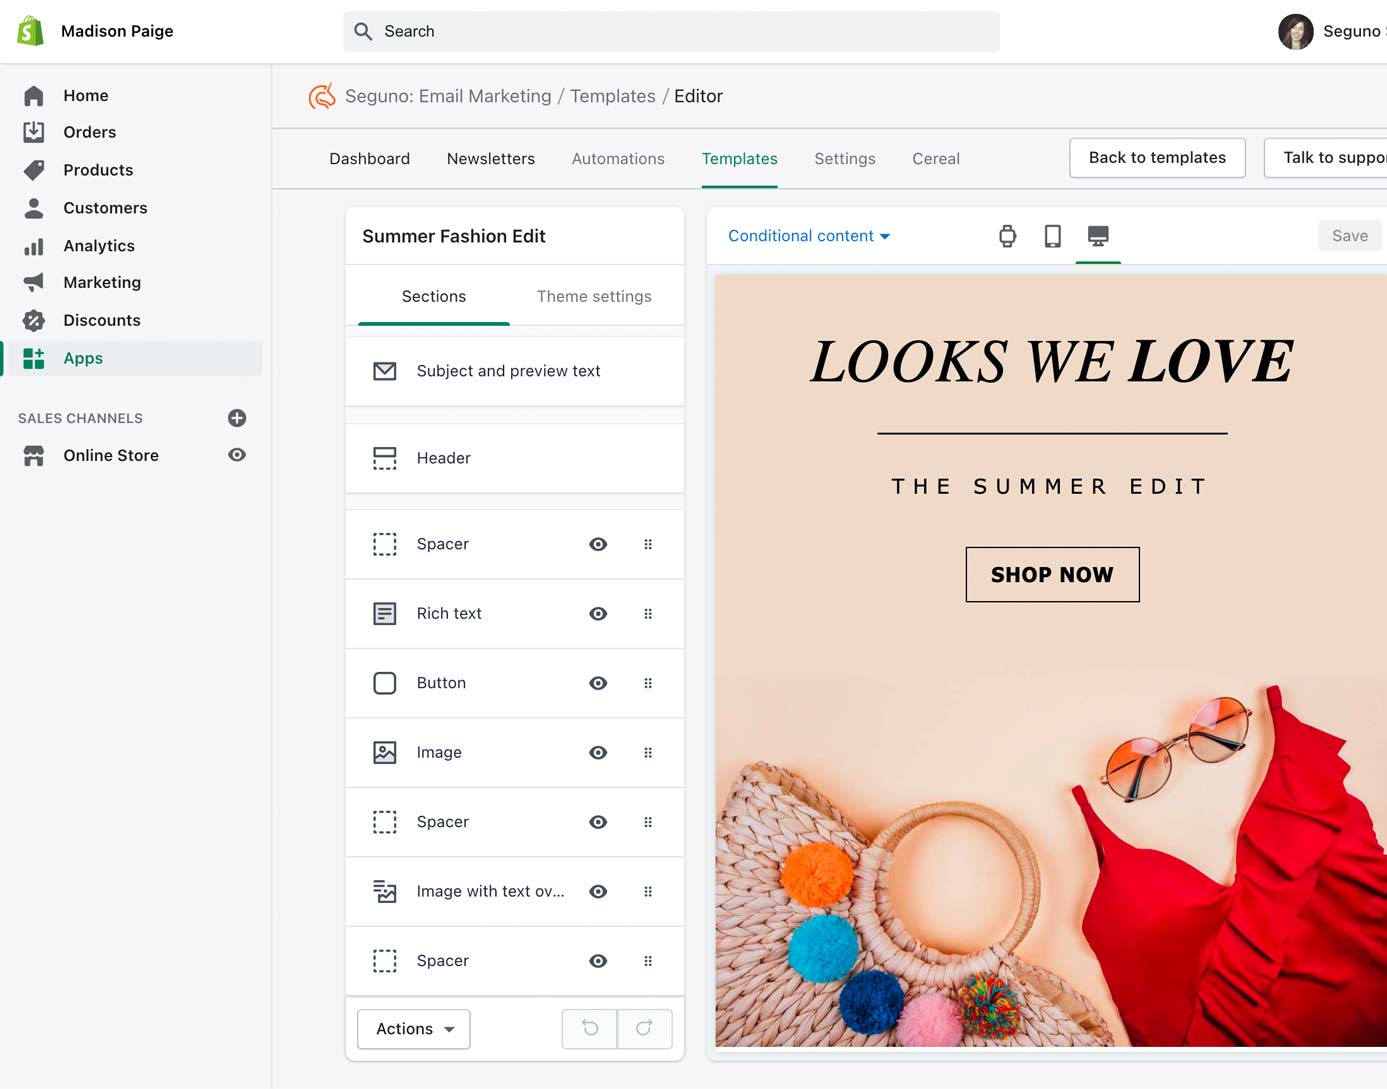 Use Seguno Email Marketing to create beautiful emails inside Shopify